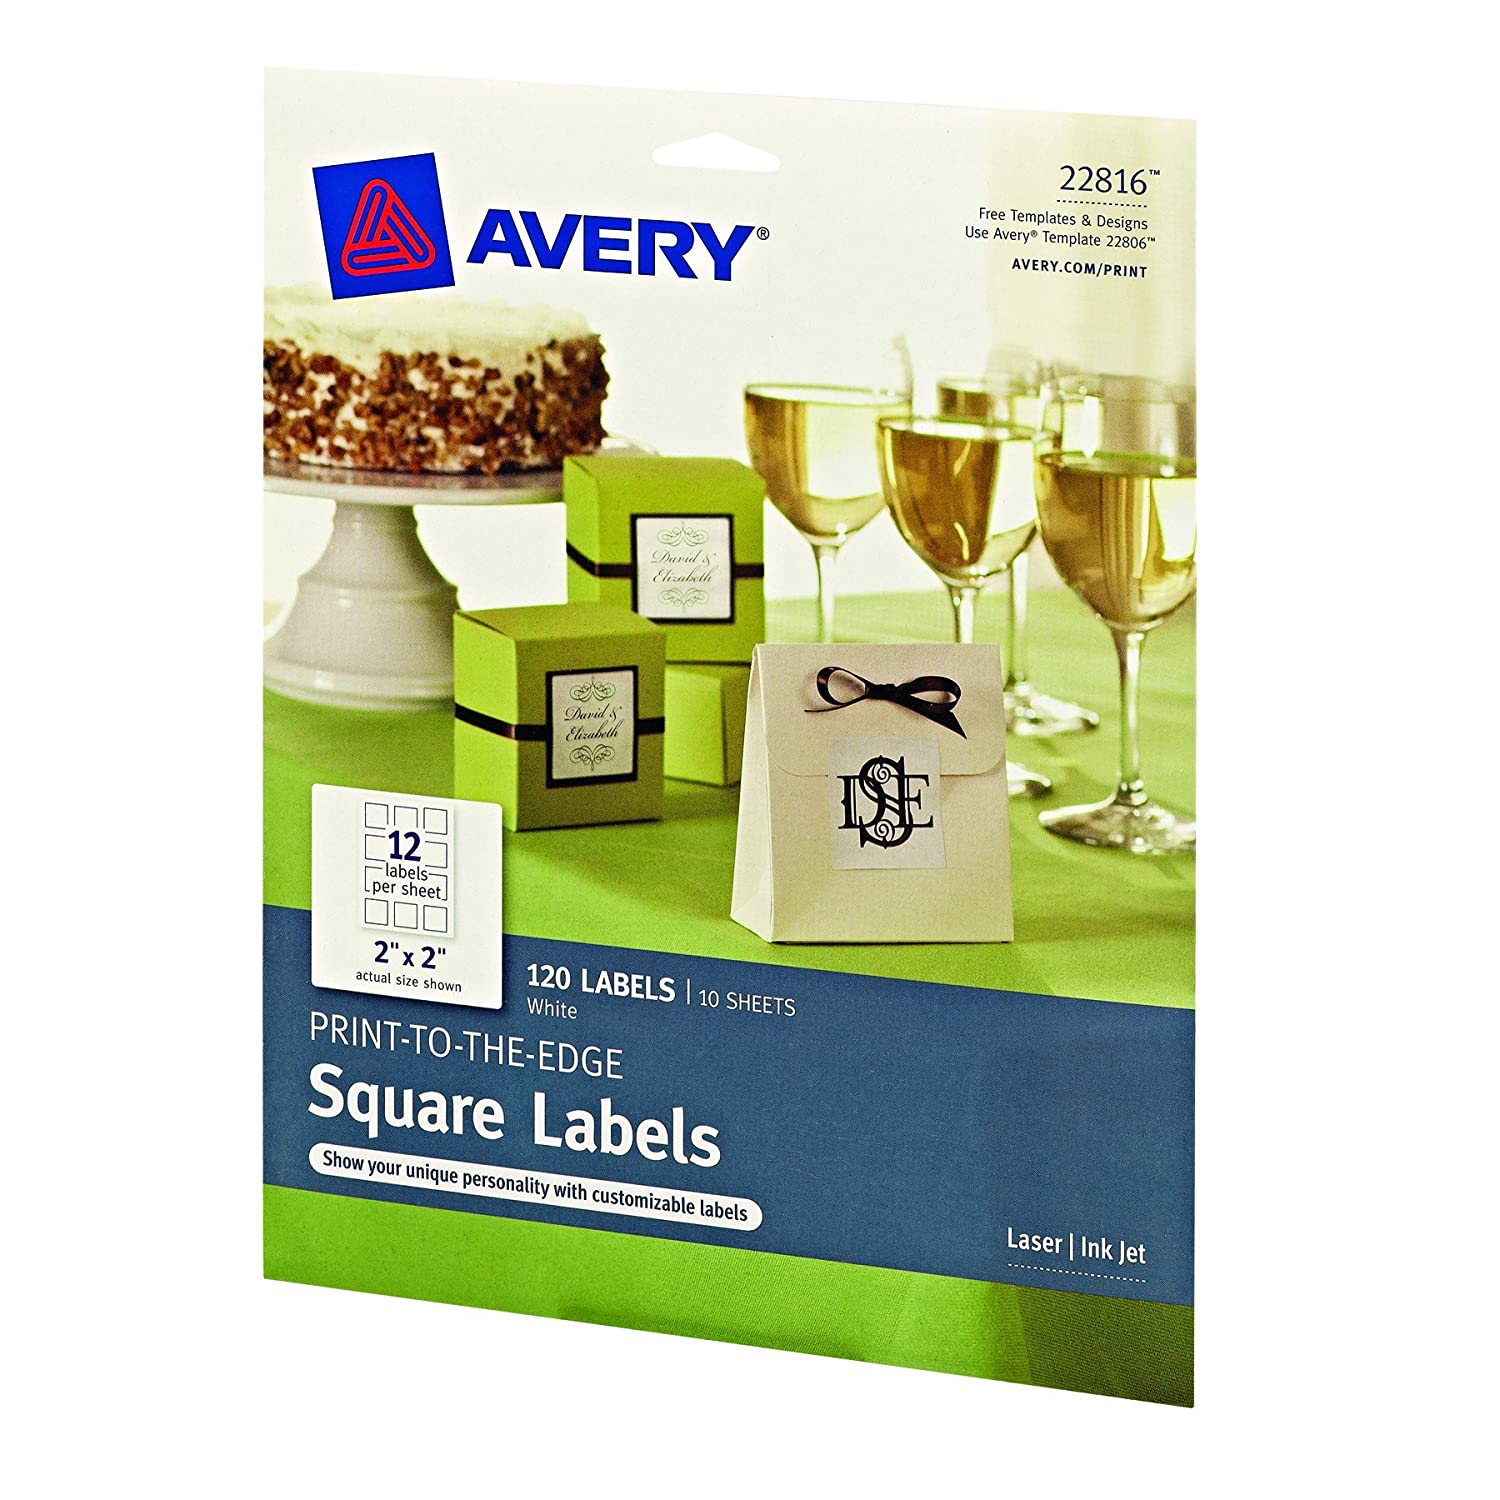 amazoncom avery print to the edge square labels 2 x 2 inches pack of 120 22816 all purpose labels office products